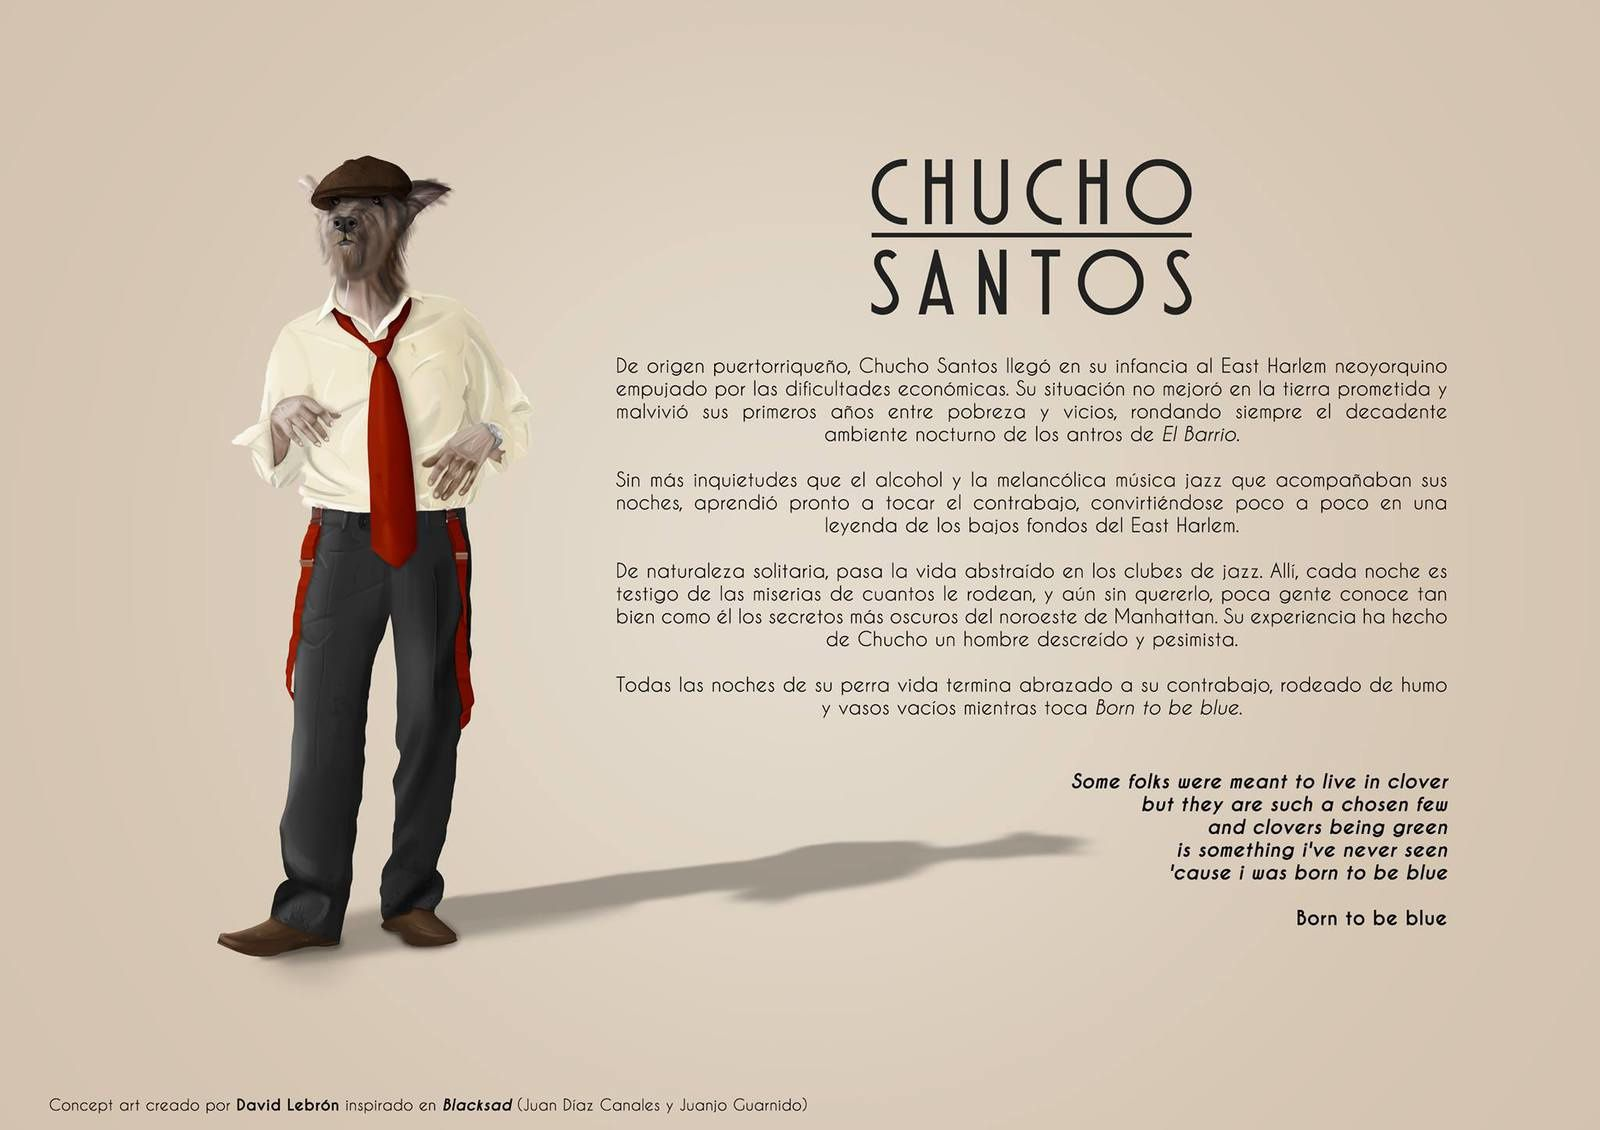 A character created by me, inspired in Blacksad world. A puerto-rican double bass player called Chucho Santos. Hope you like it !